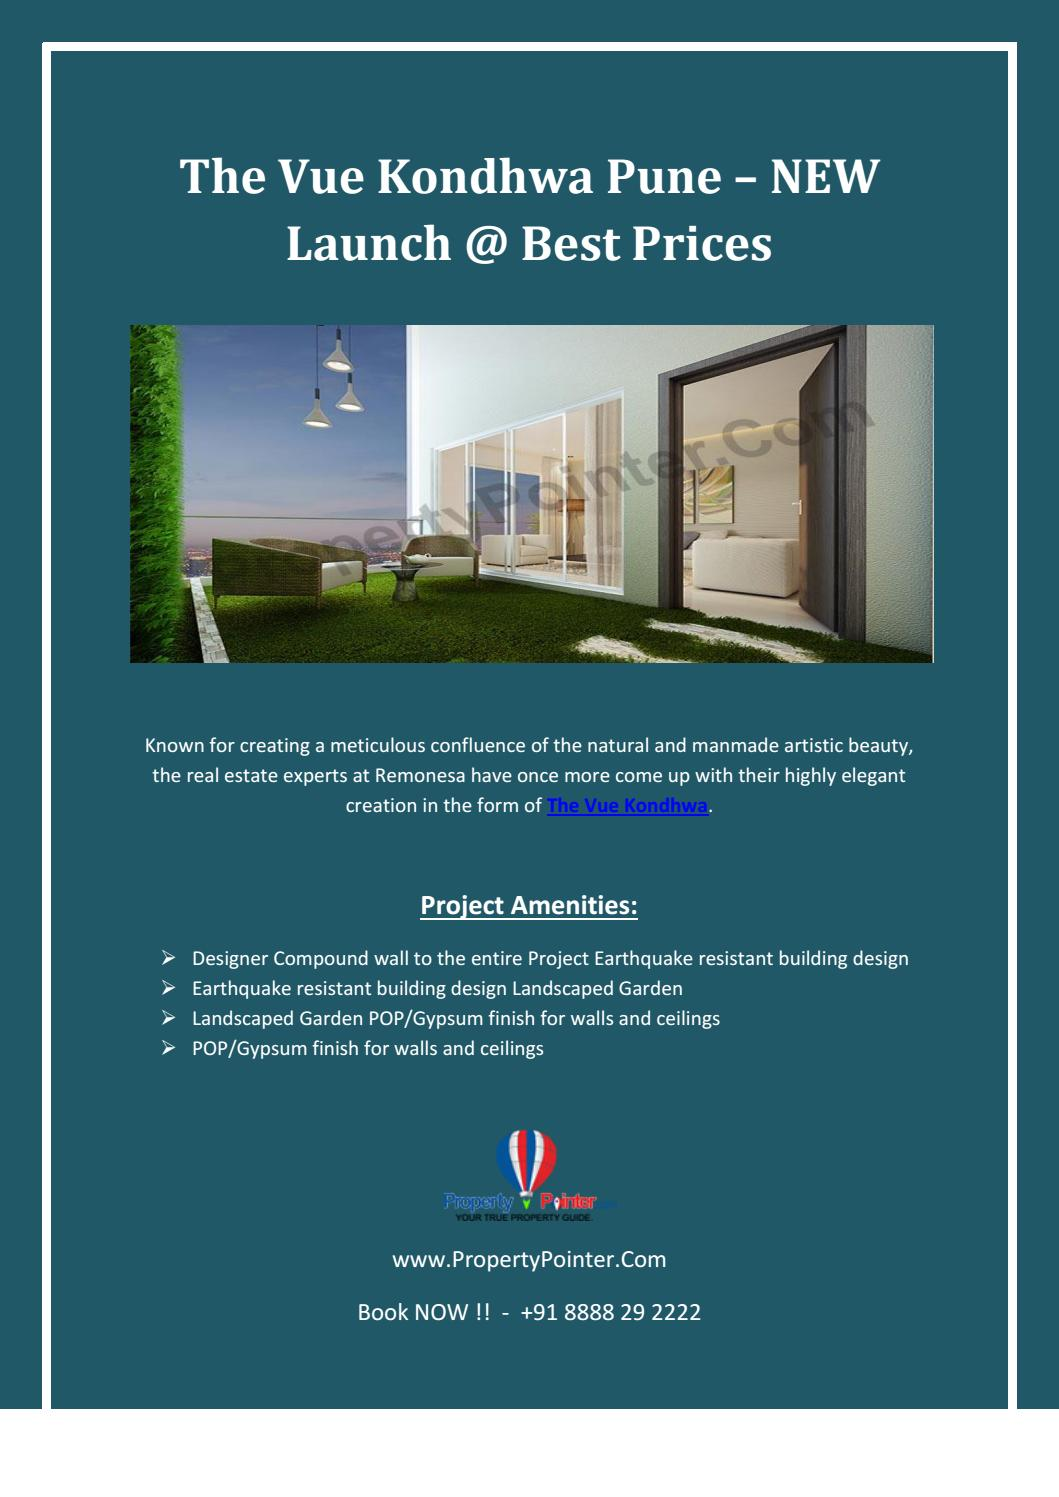 The Vue Kondhwa Pune – NEW Launch @ Best Prices by